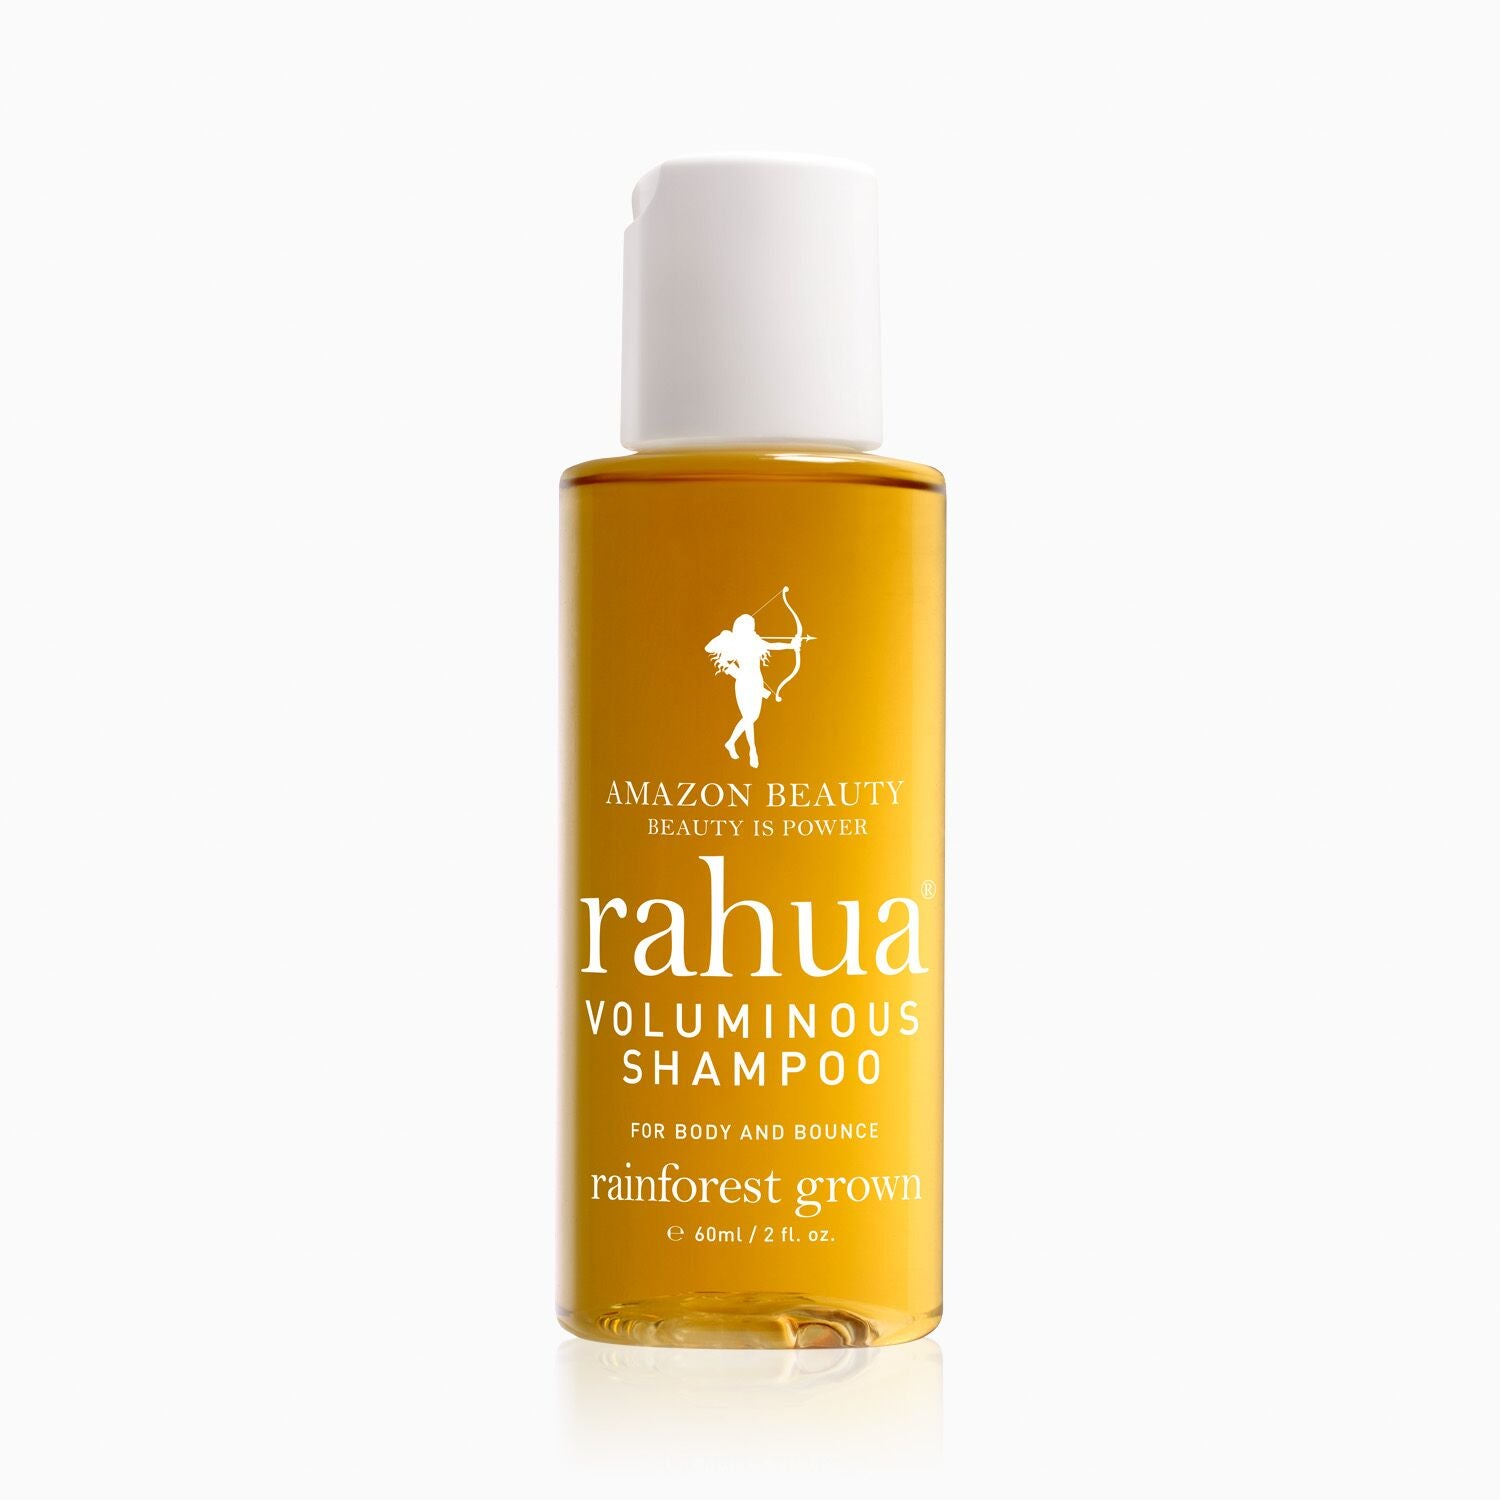 RAHUA VOLUMINOUS SHAMPOO 60ml